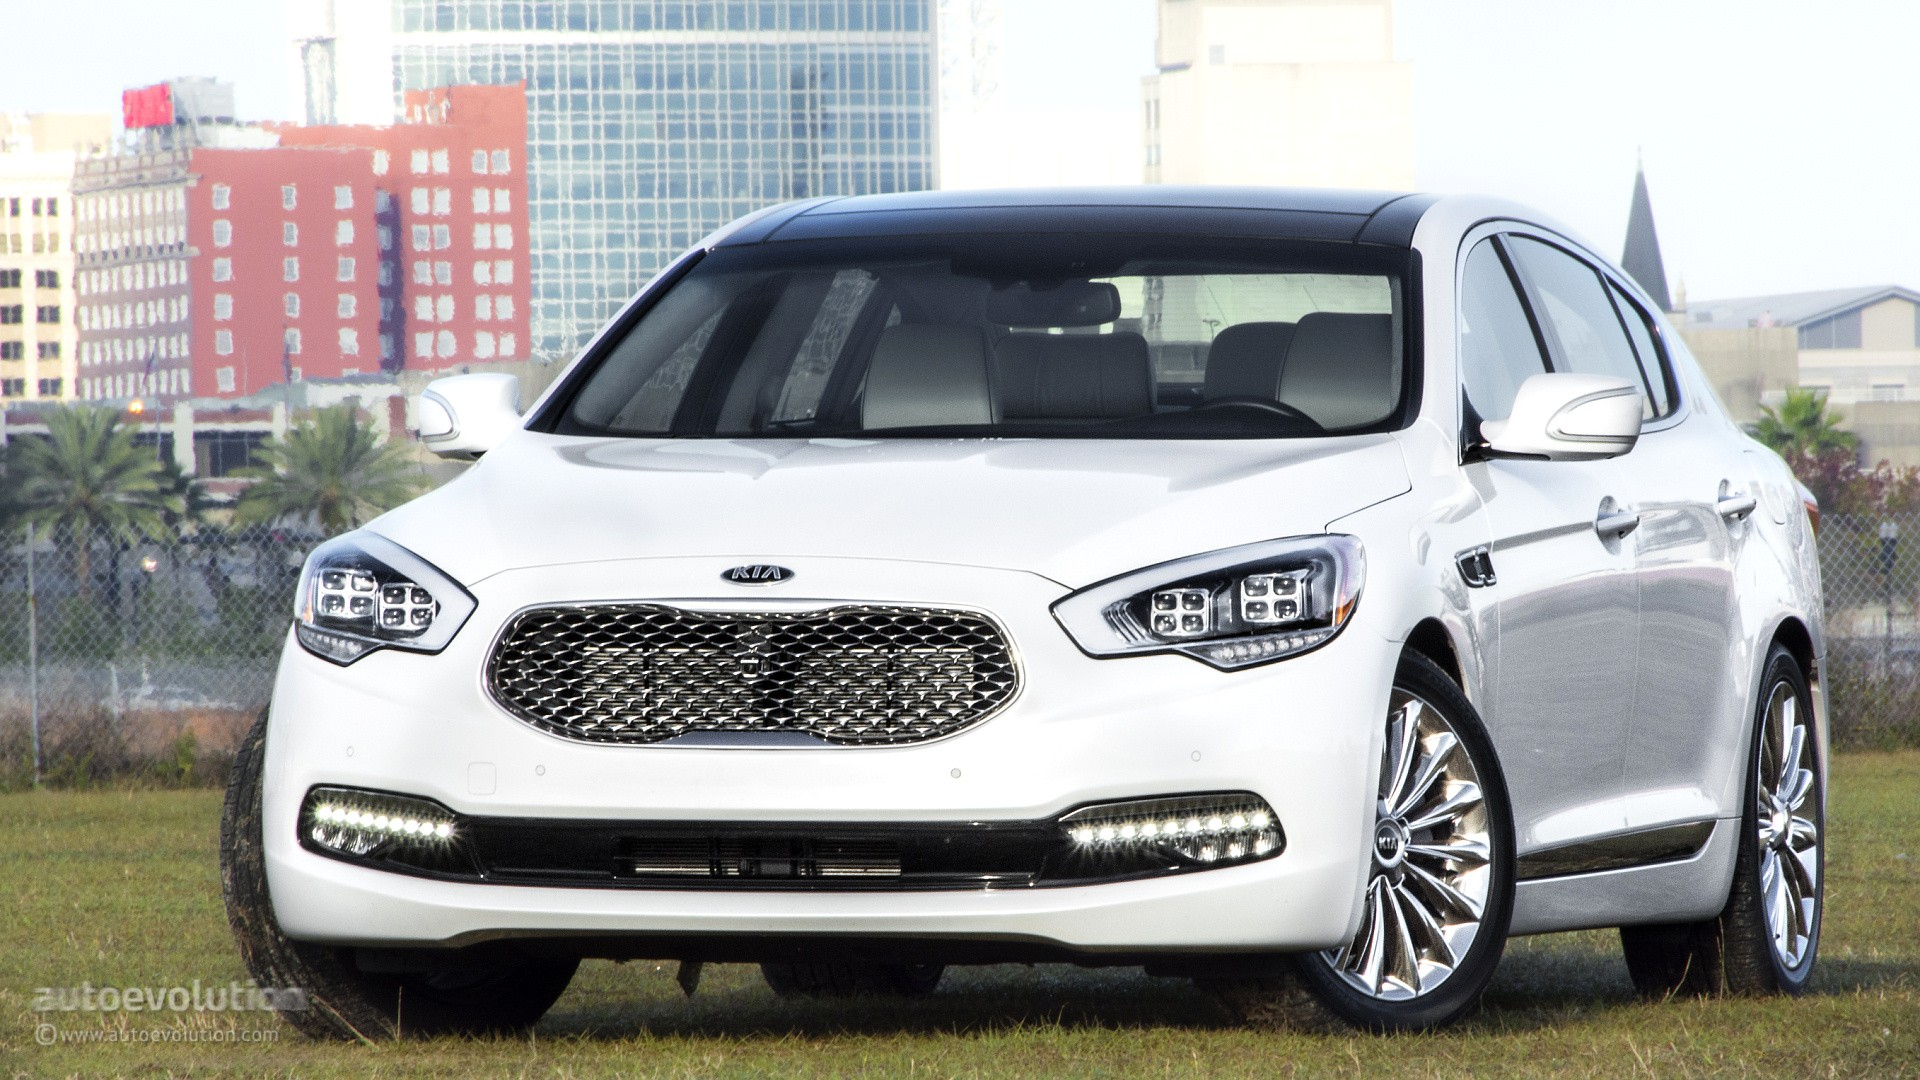 Kia K9 Price >> 2015 Kia K900 Full HD Wallpapers: Step Inside - autoevolution